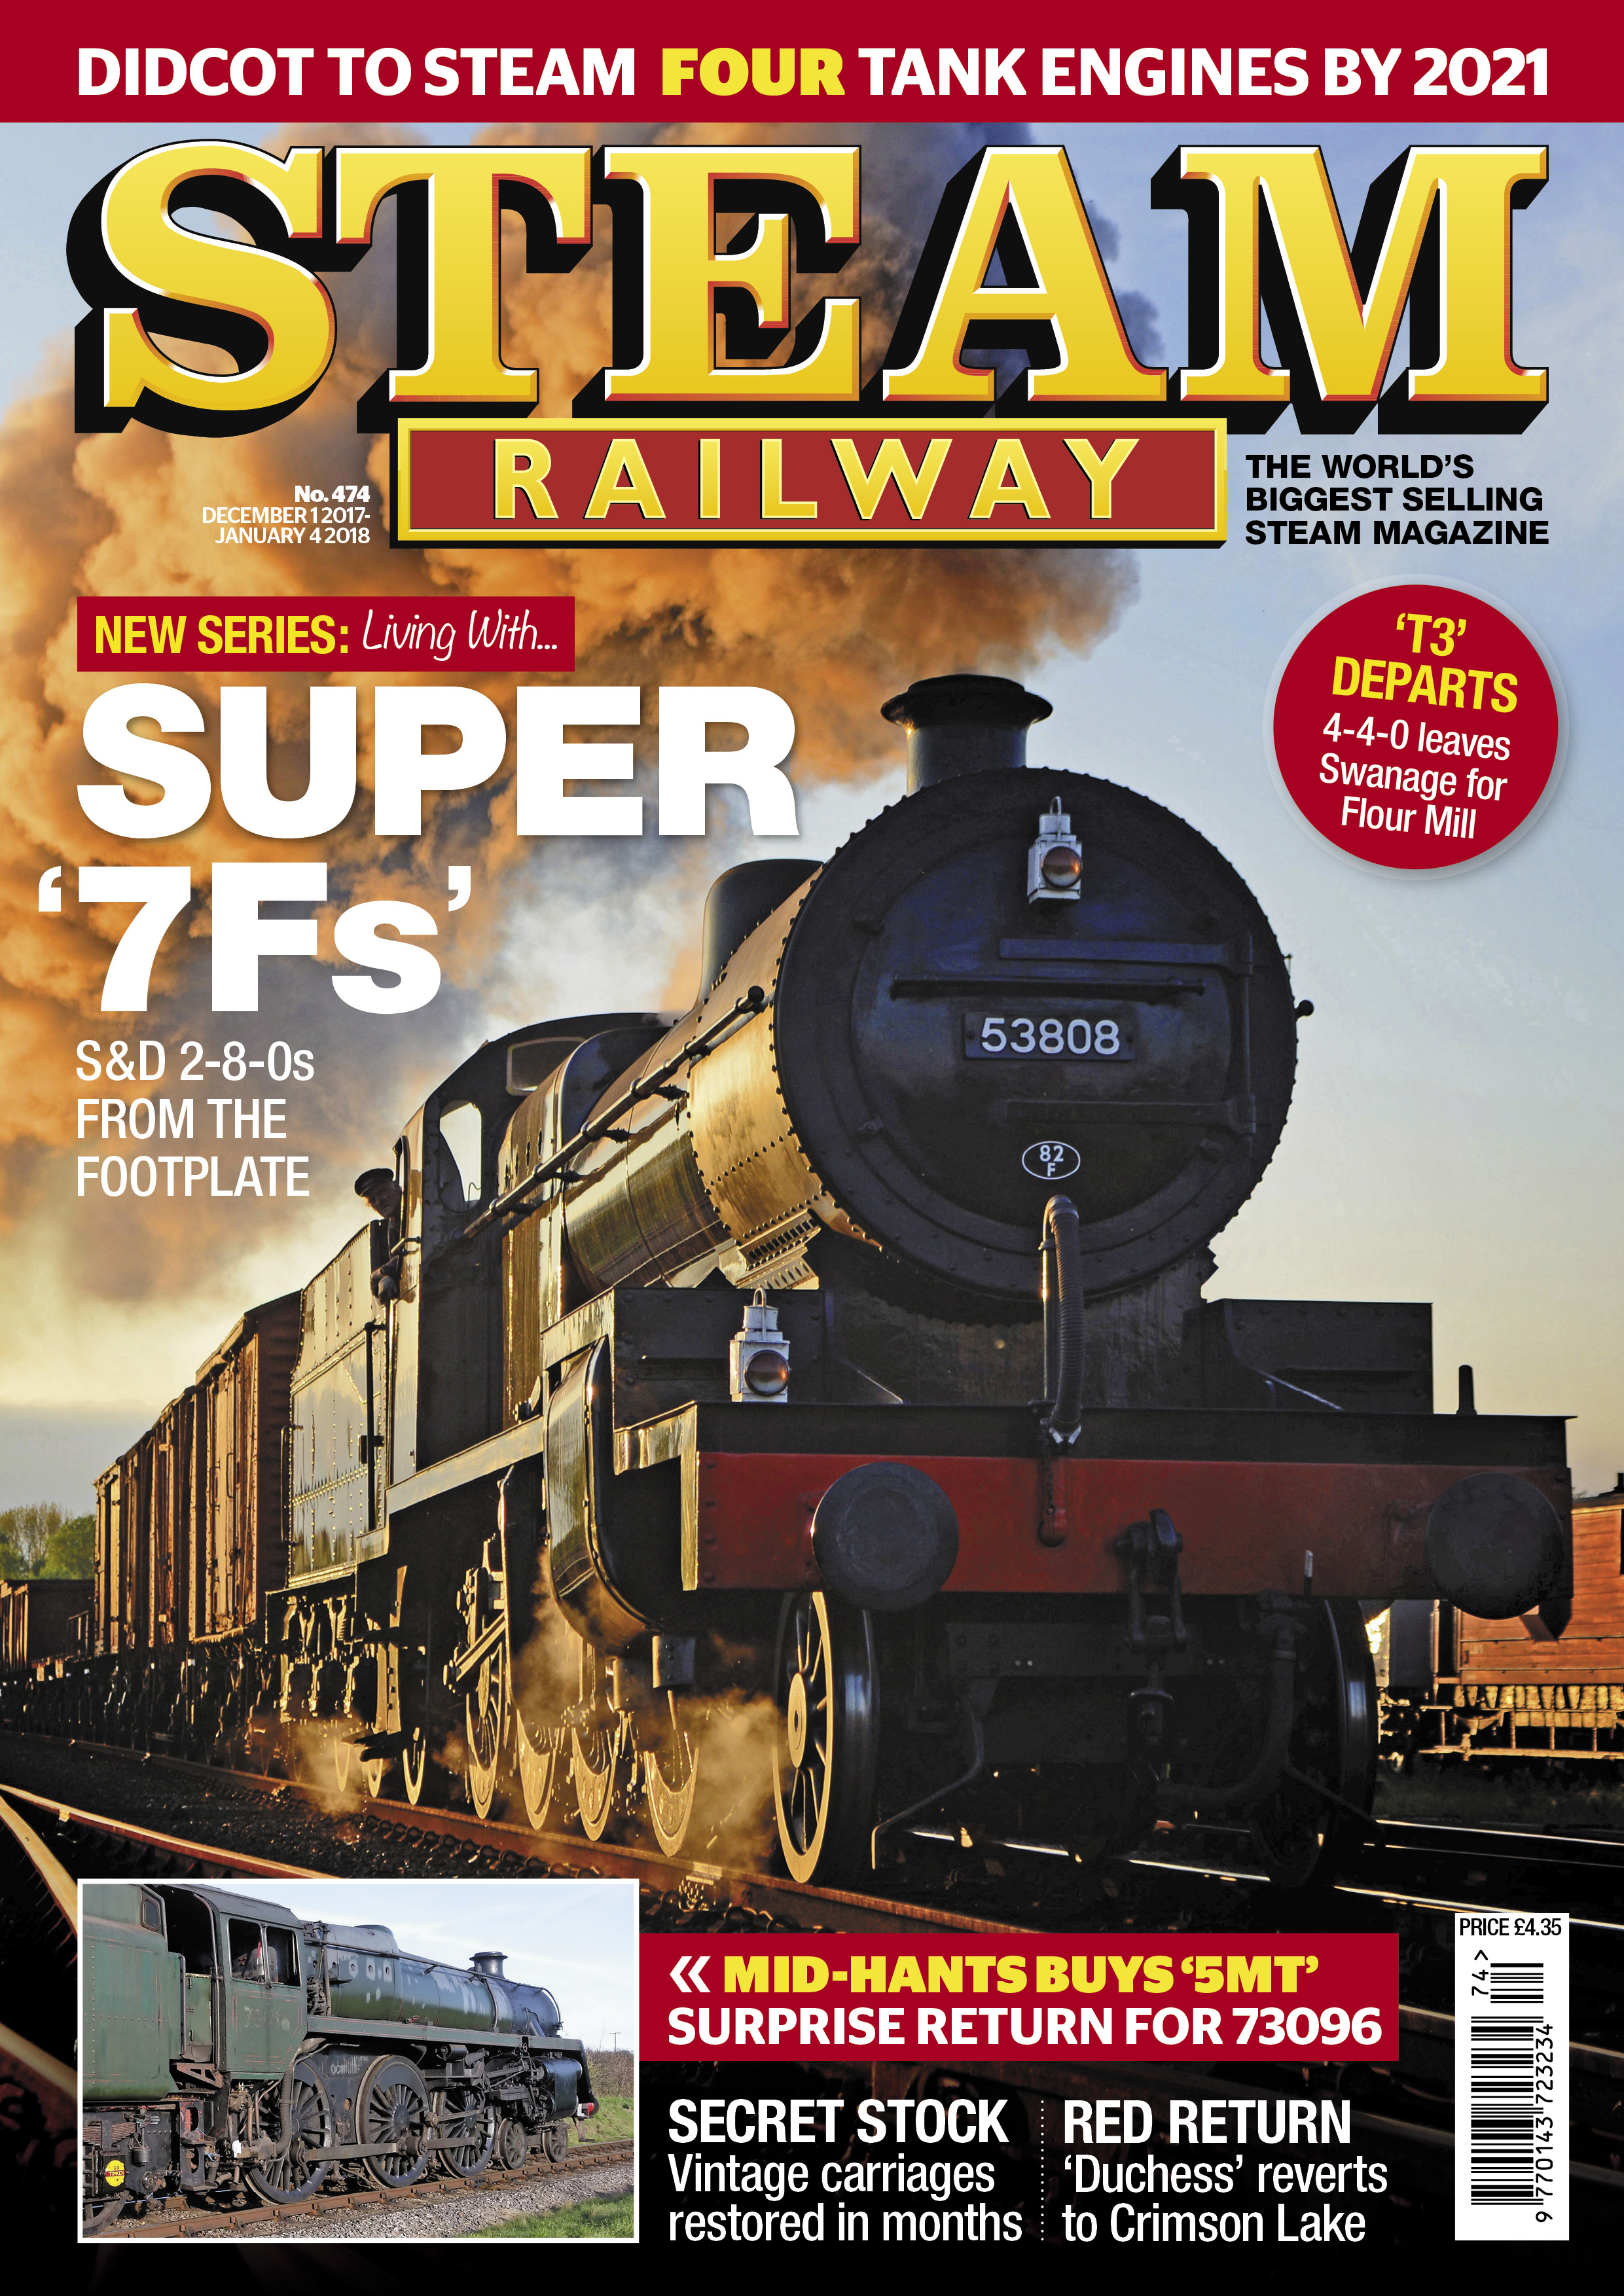 Steam Railway  SR474 - On Sale Now!